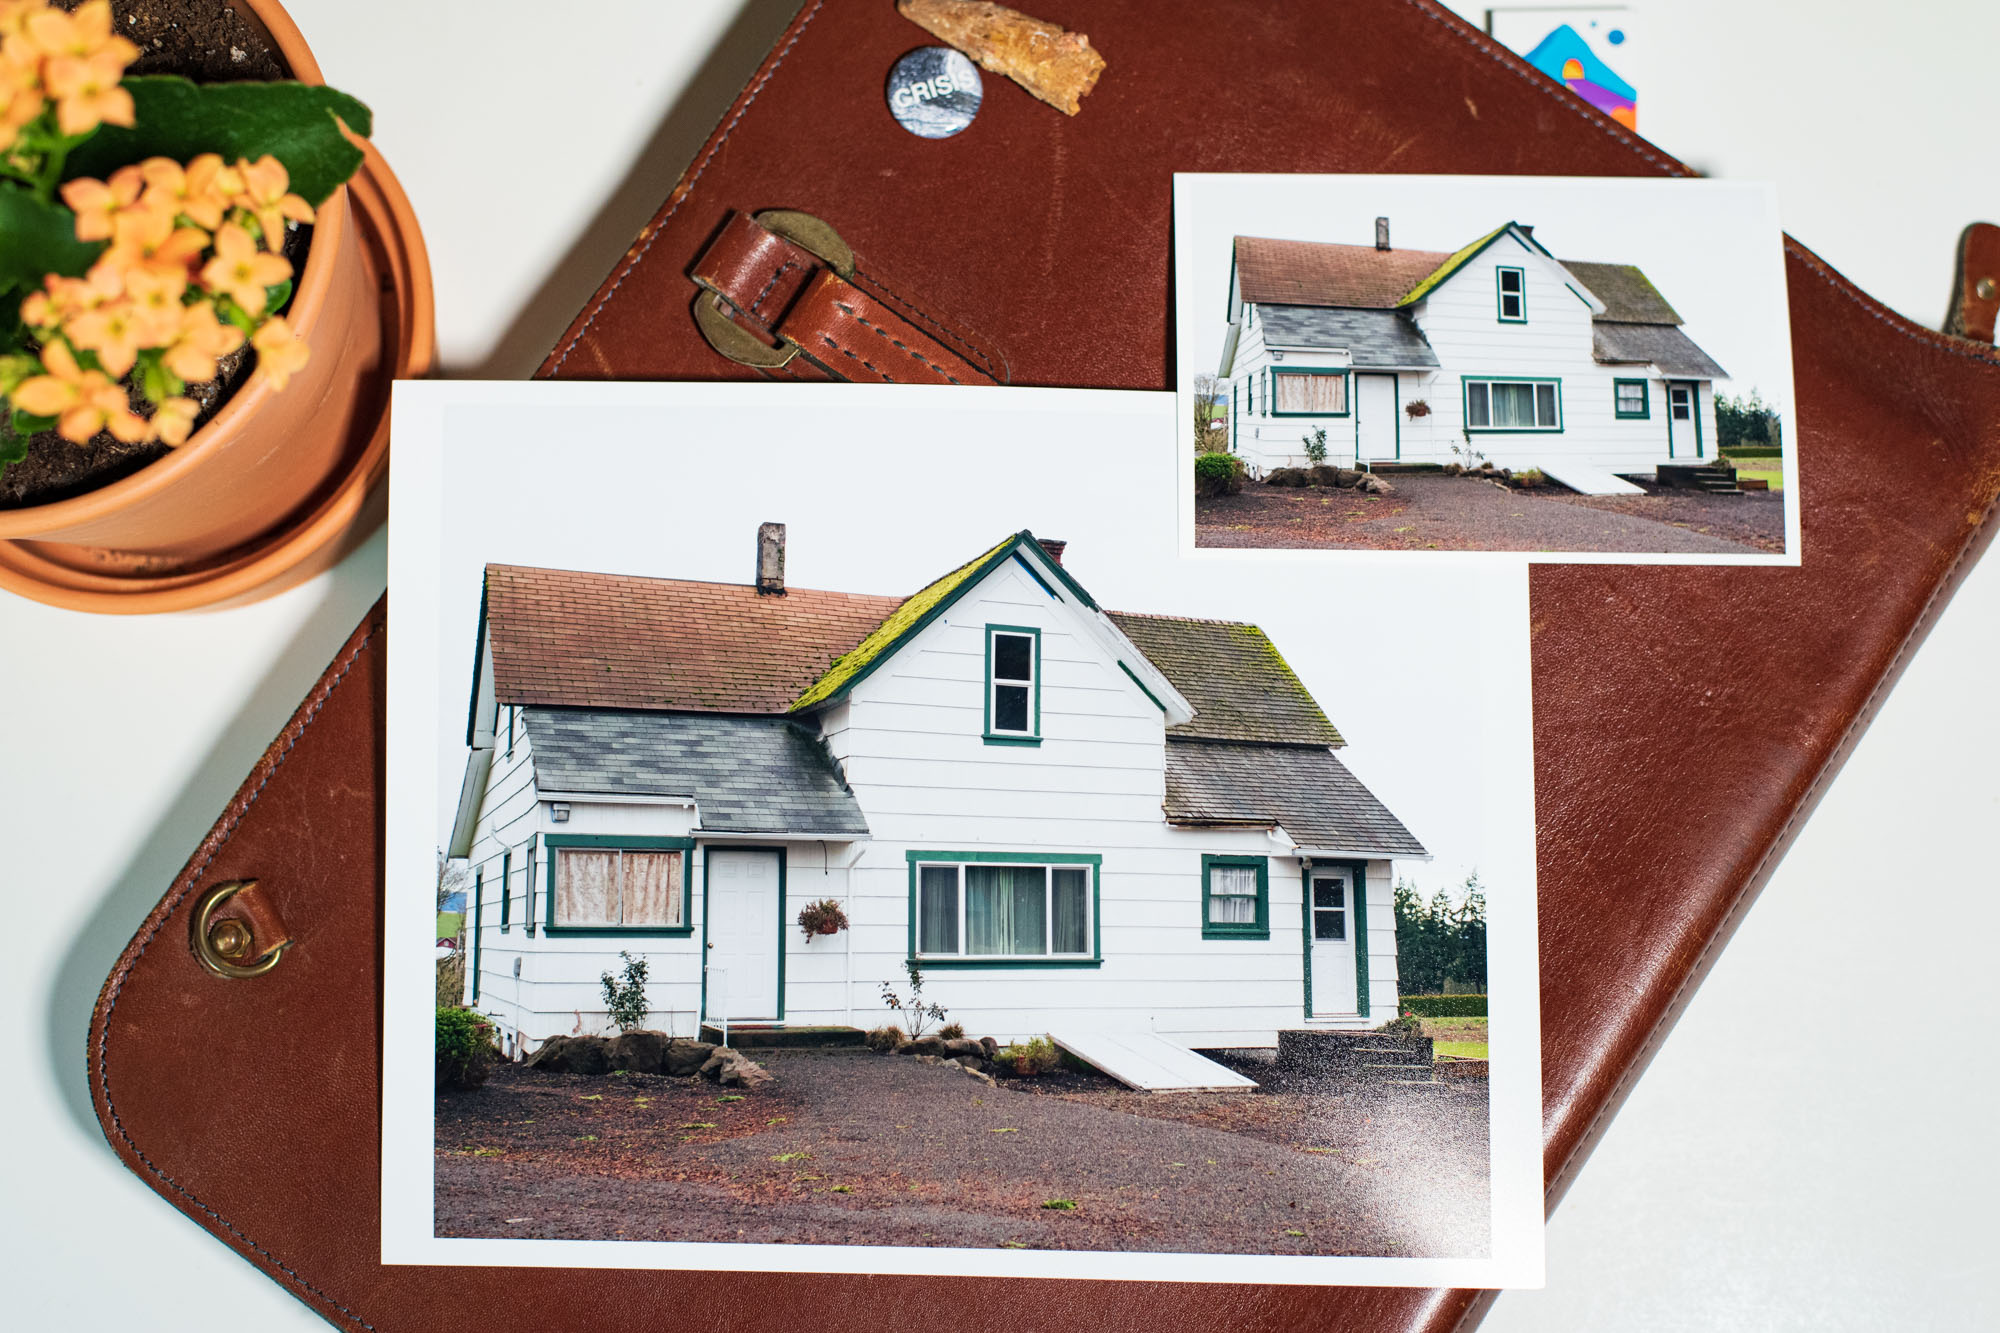 dye ink prints of a farmhouse are displayed artfully on a table